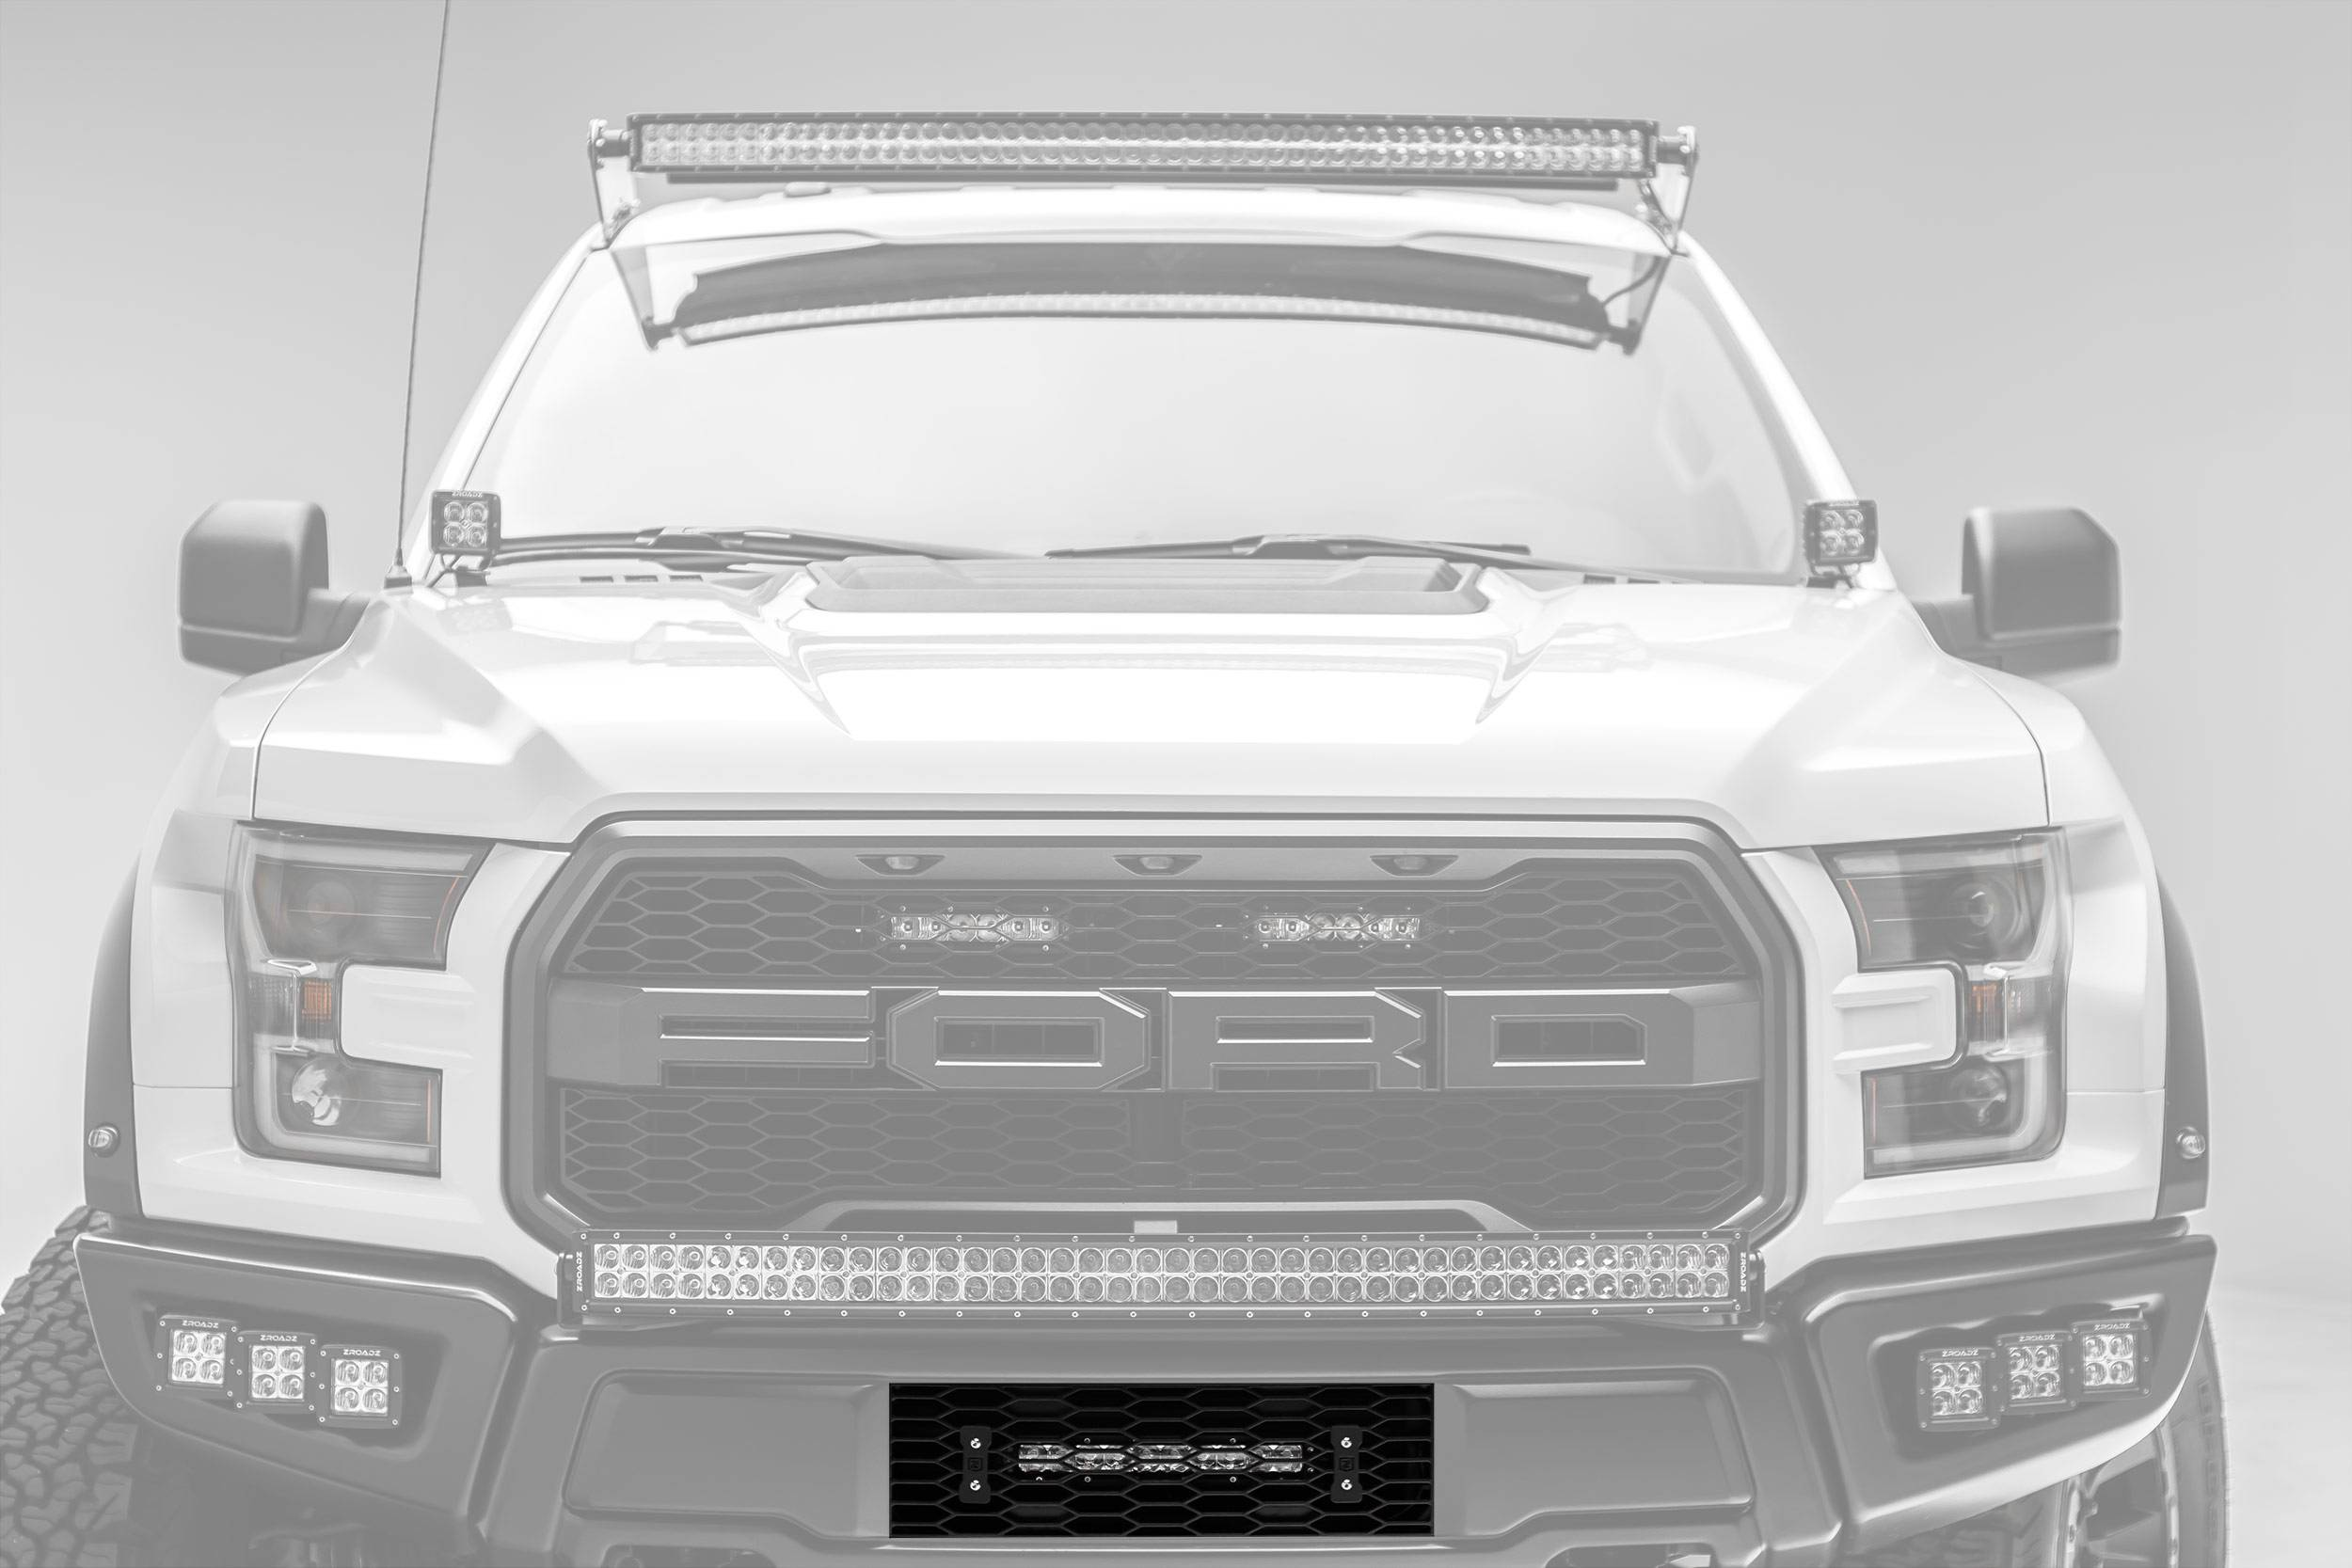 ZROADZ                                             - 2017-2019 Ford F-150 Raptor OEM Bumper Grille LED Kit, Incl. (1) 10 Inch LED Single Row Slim Light Bar - PN #Z415661-KIT